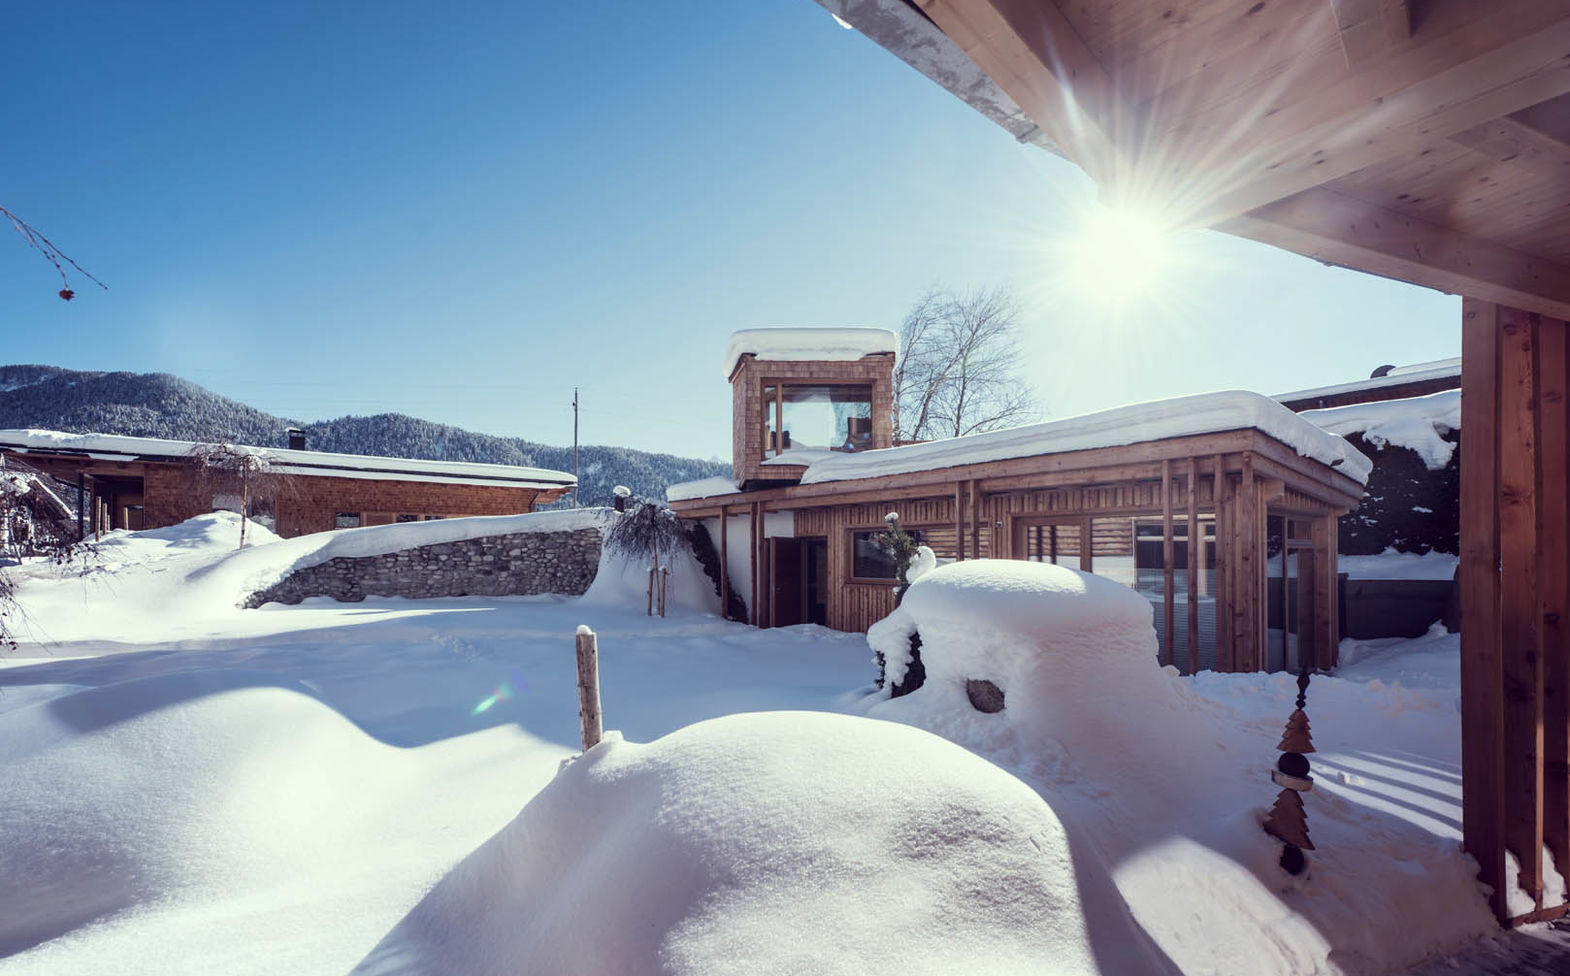 Naturhotel Aufatmen im Winter in Tirol